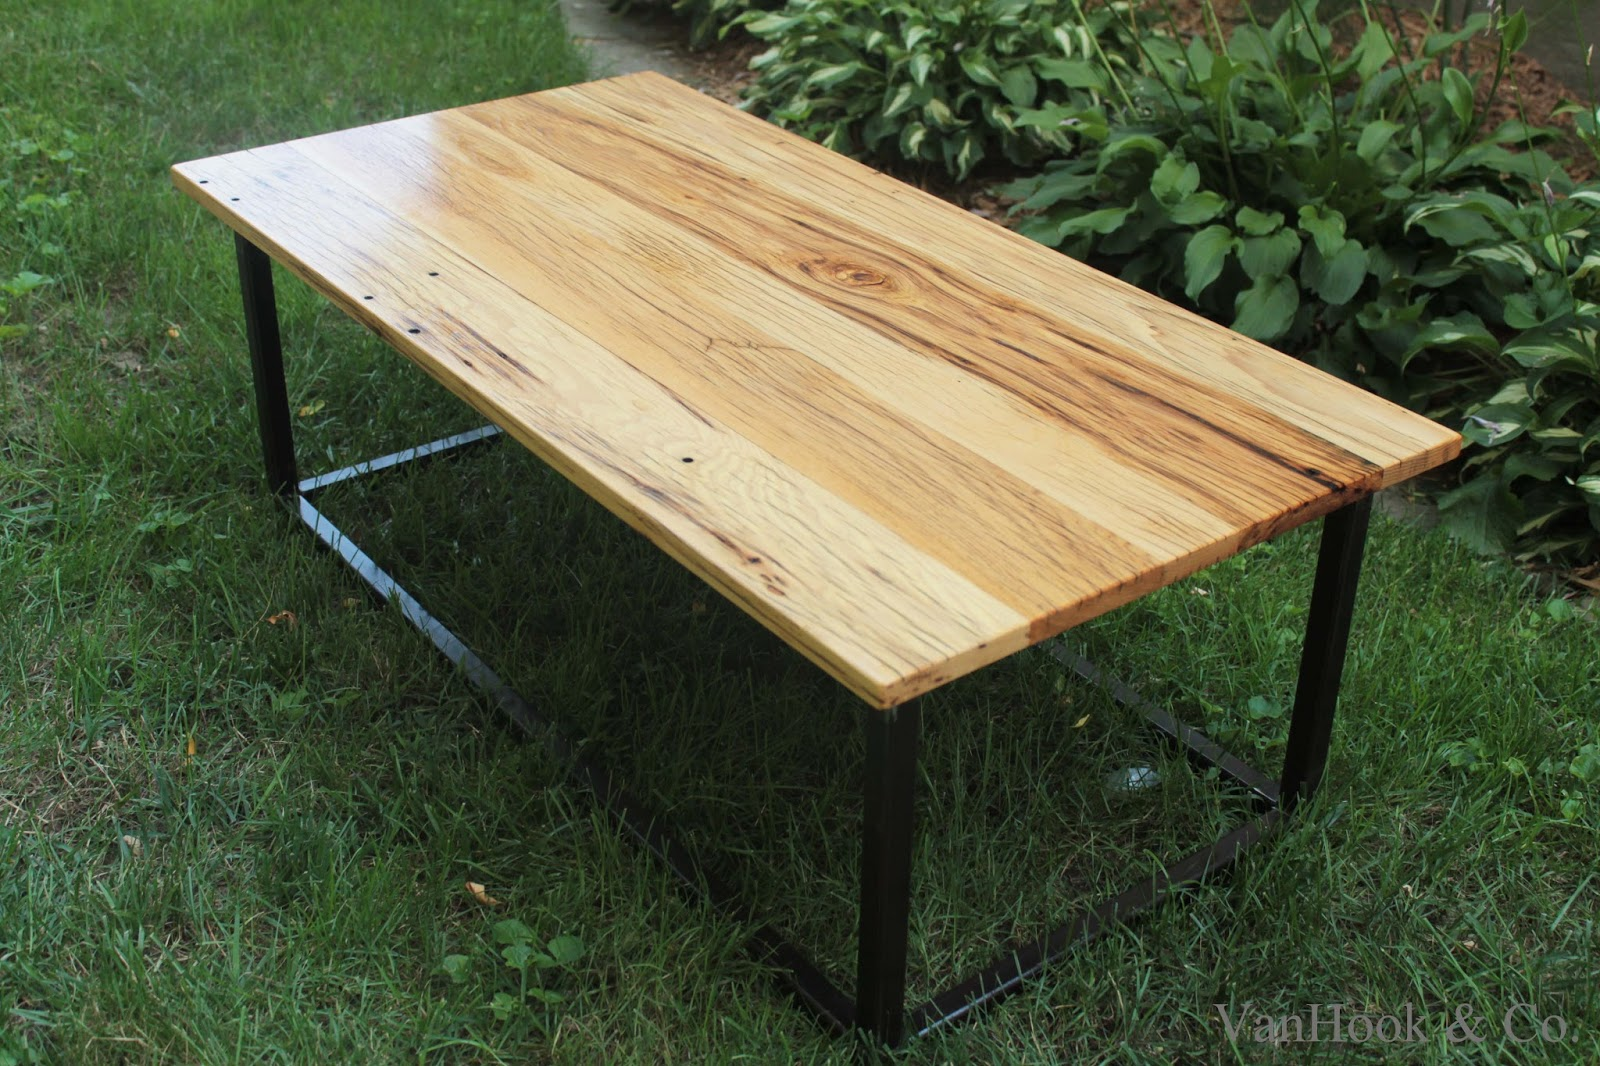 Vanhook co hand built white oak and steel frame coffee table monday july 29 2013 geotapseo Choice Image